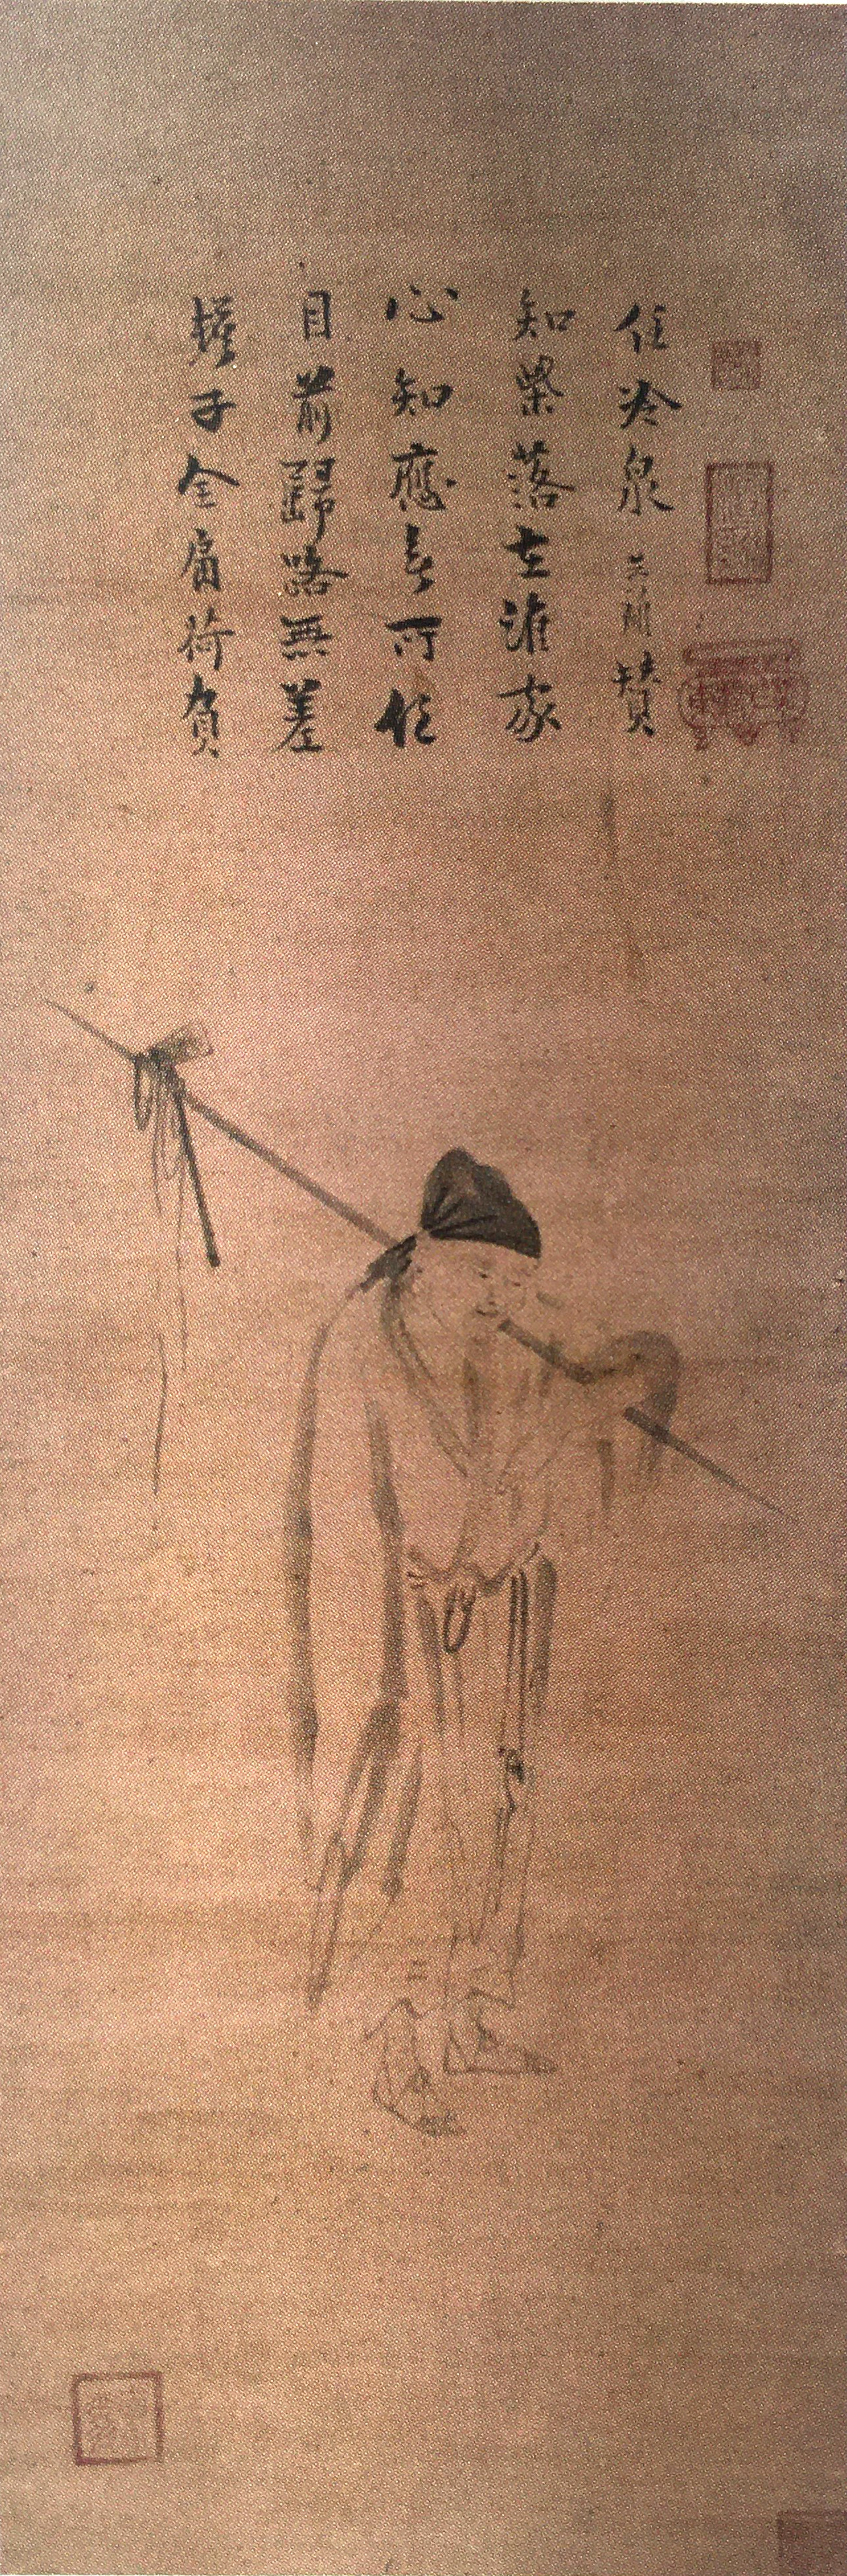 Huineng with rod.jpg